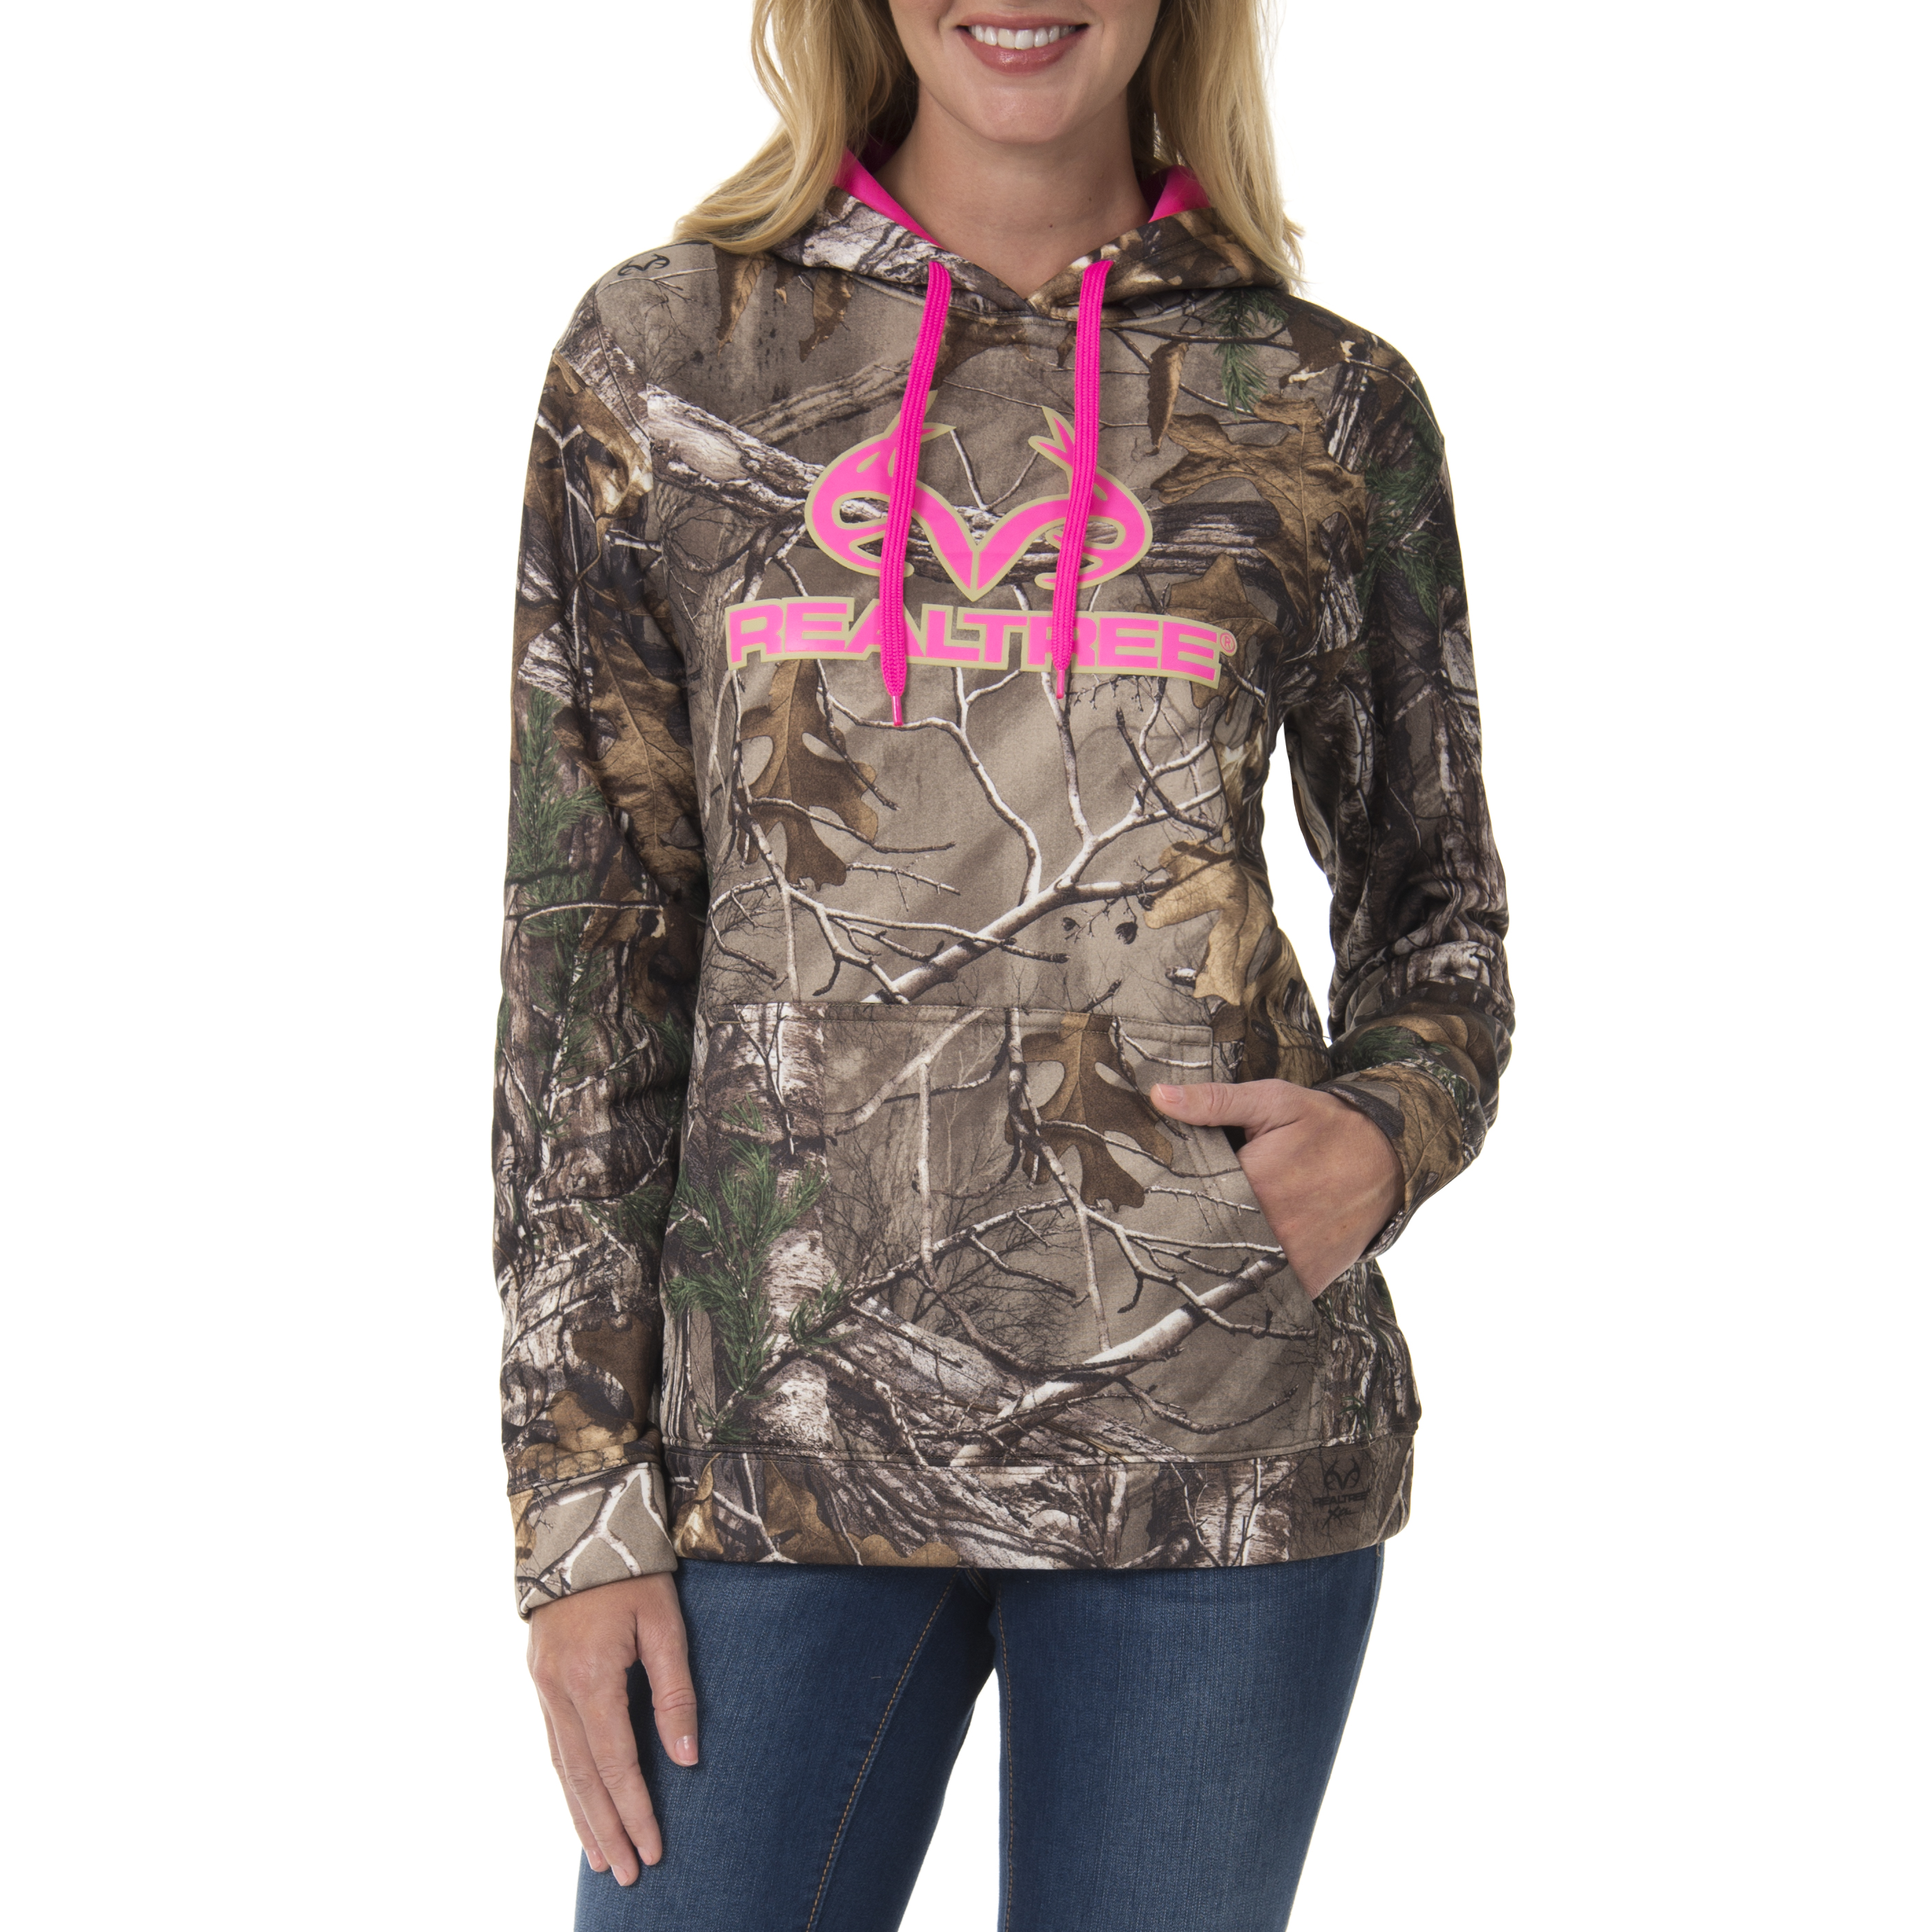 Mossy Oak and Realtree Womens Performance Pullover Hoodie